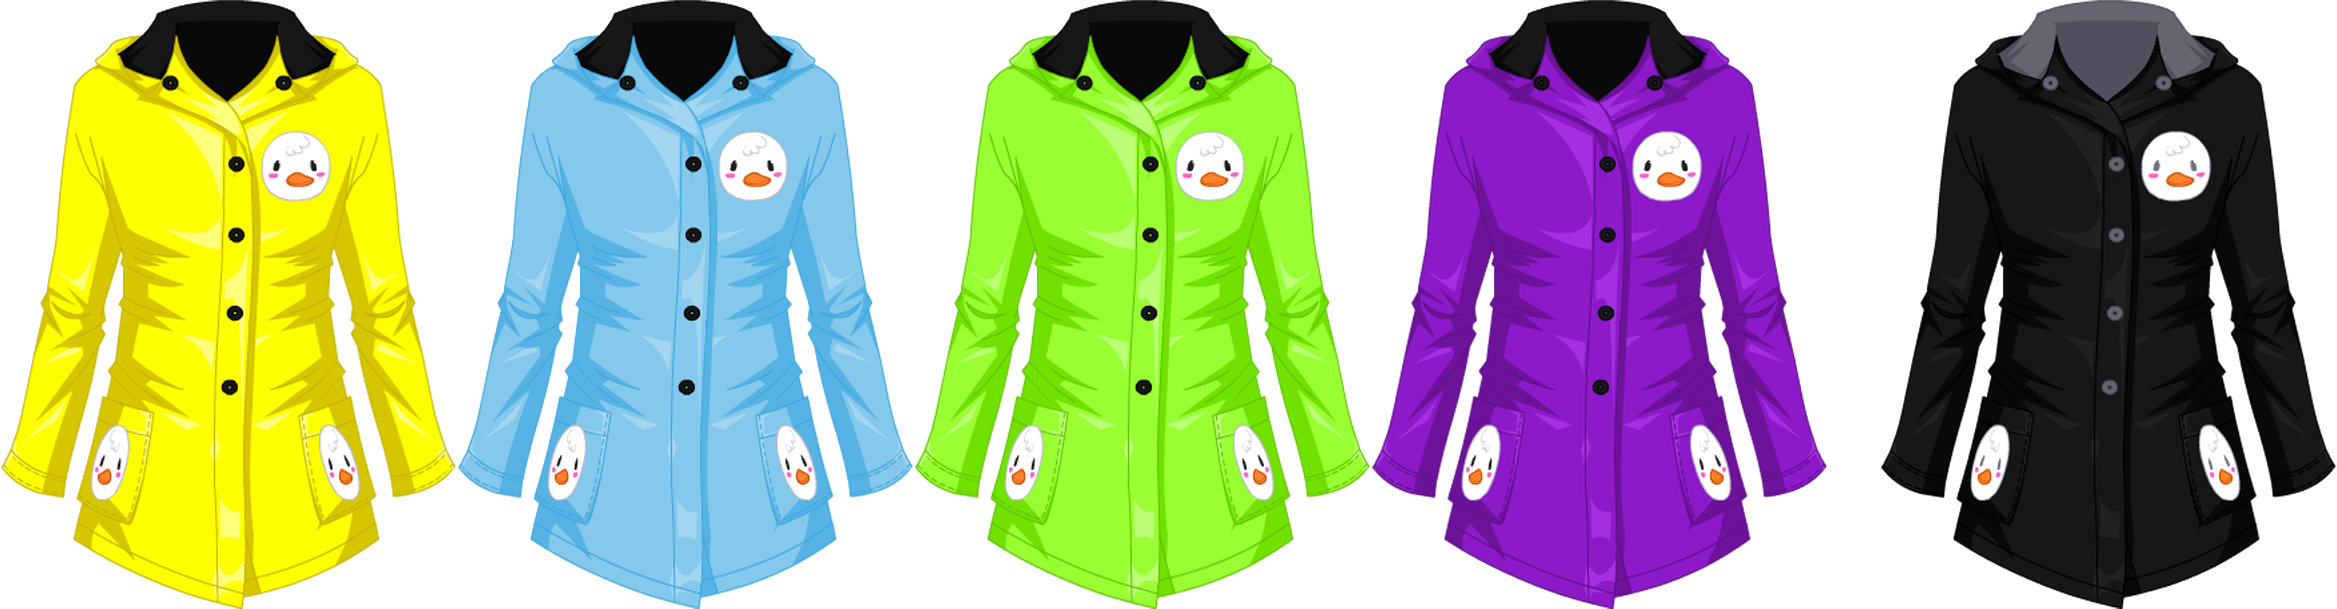 Apr. 2016 Rainy Day Duckling Jacket